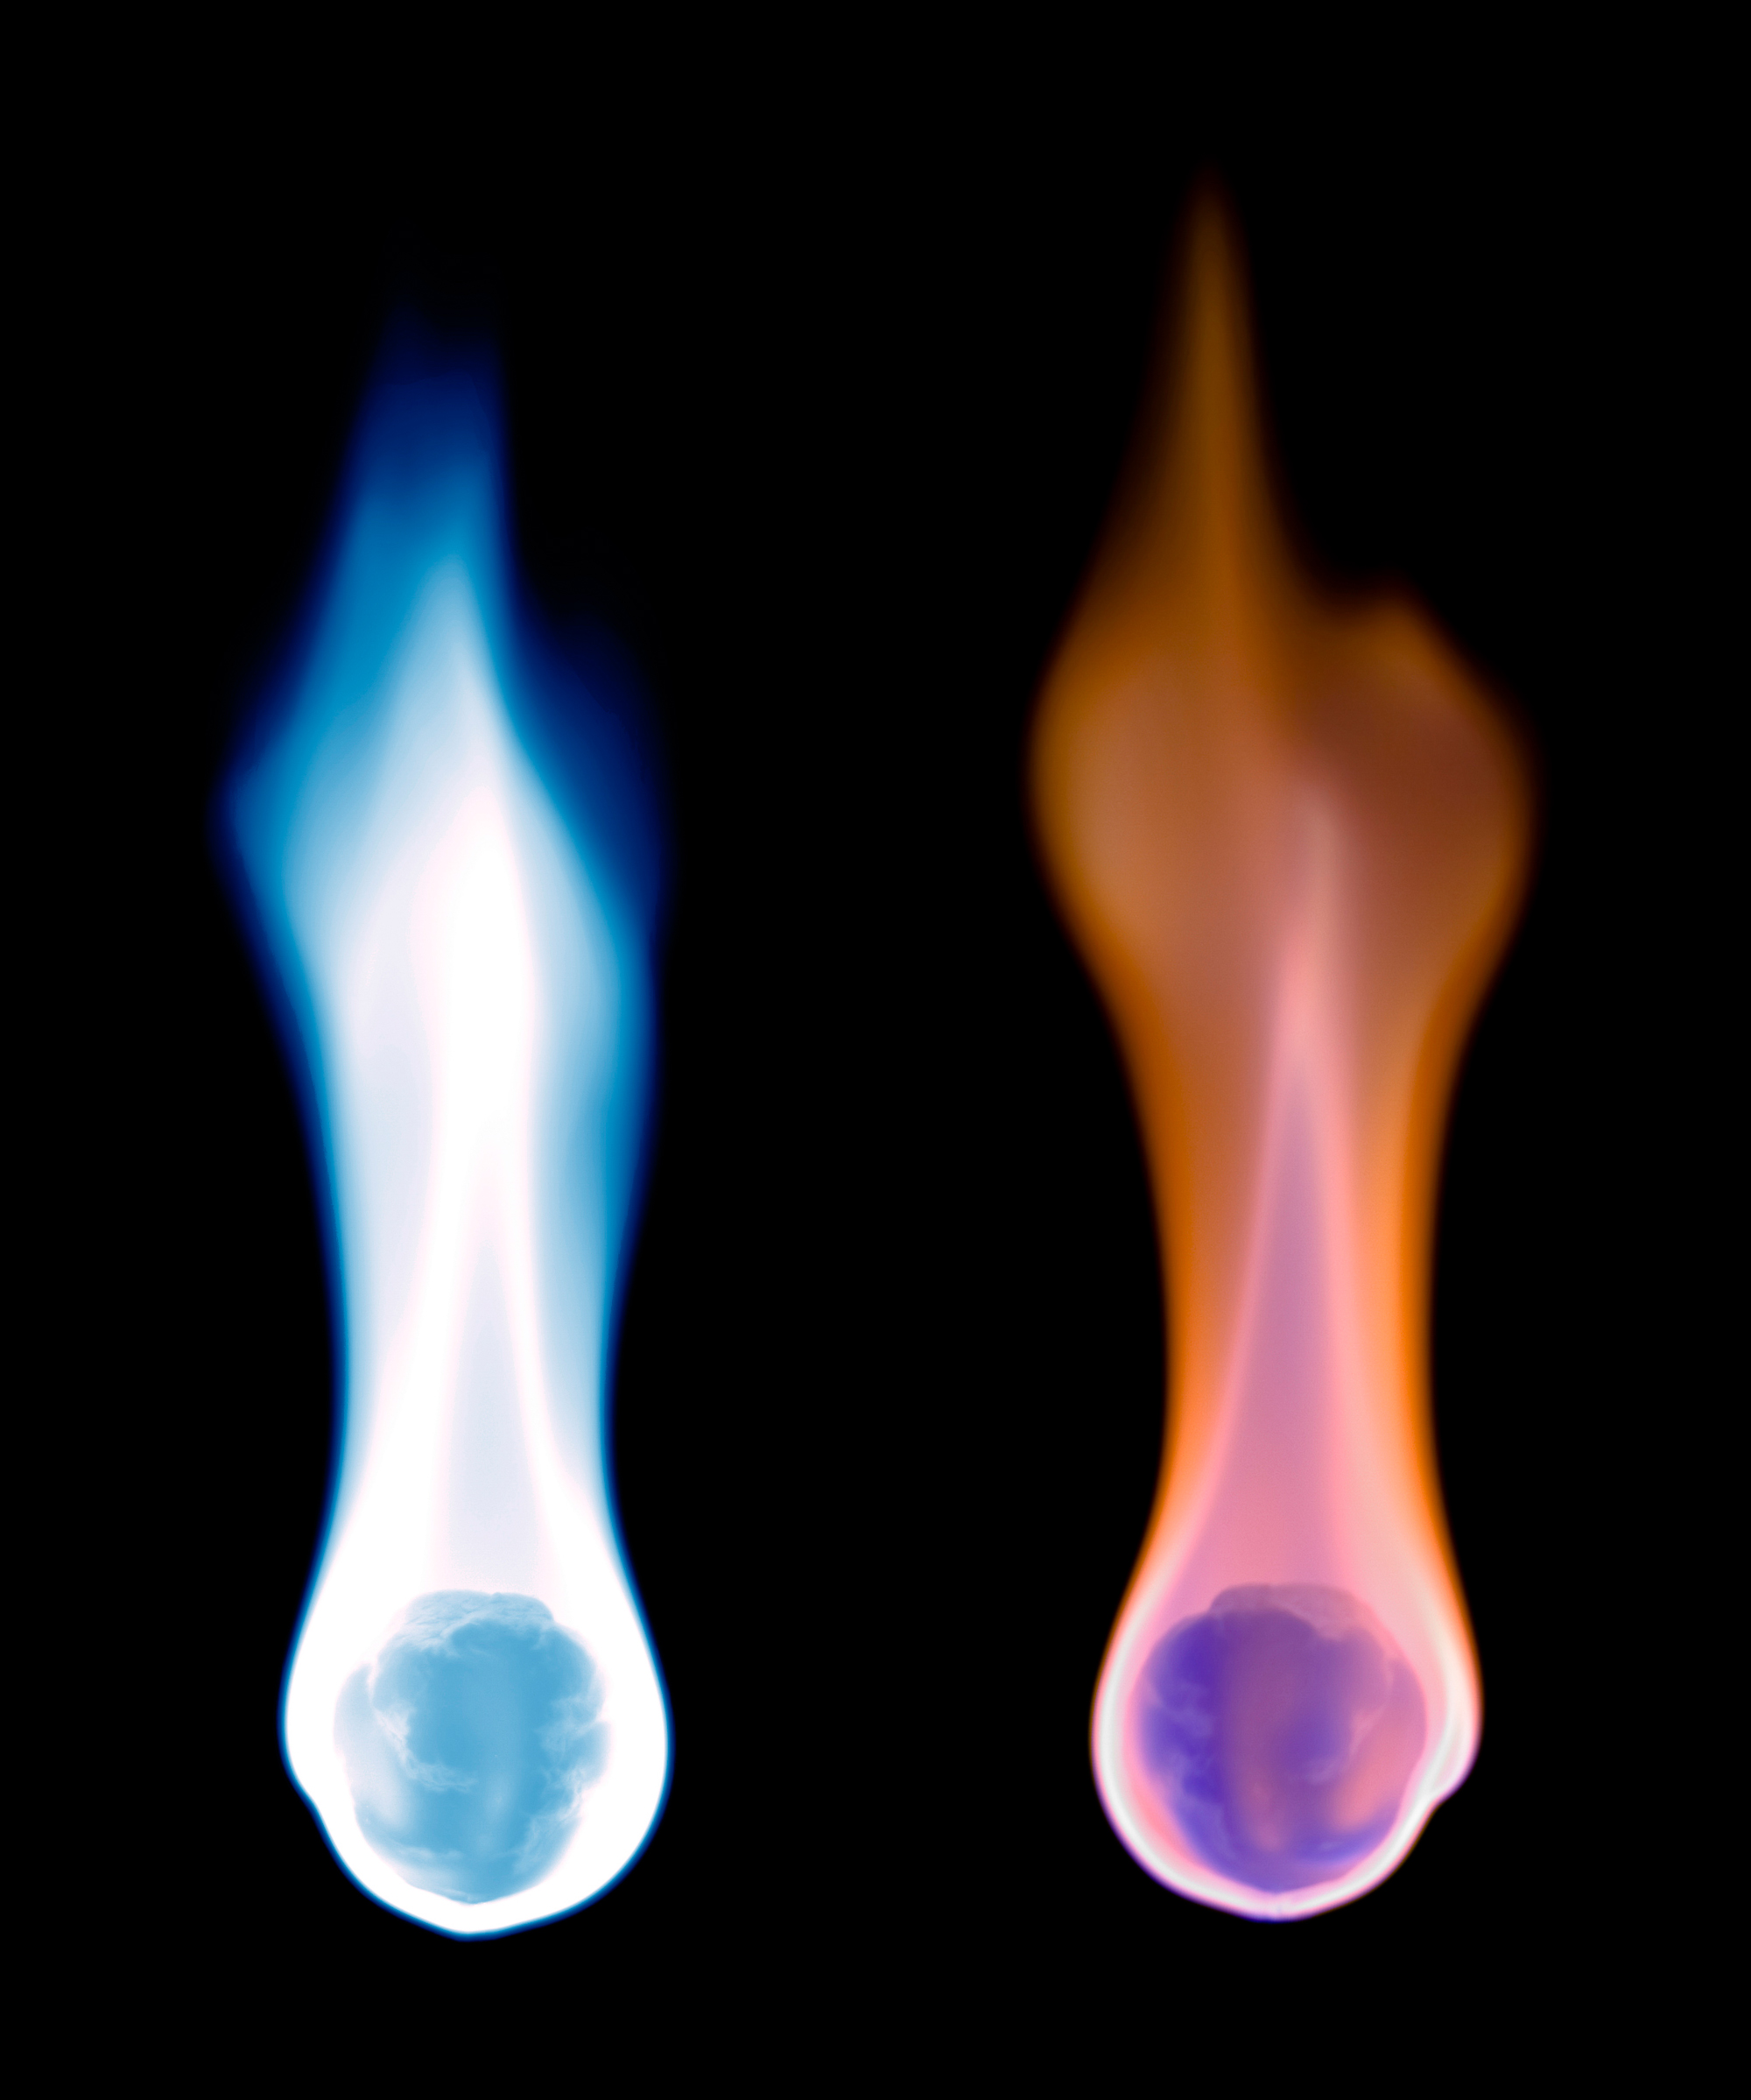 Blue and orange flames, Fire, Explosion, Flame, Flames, HQ Photo